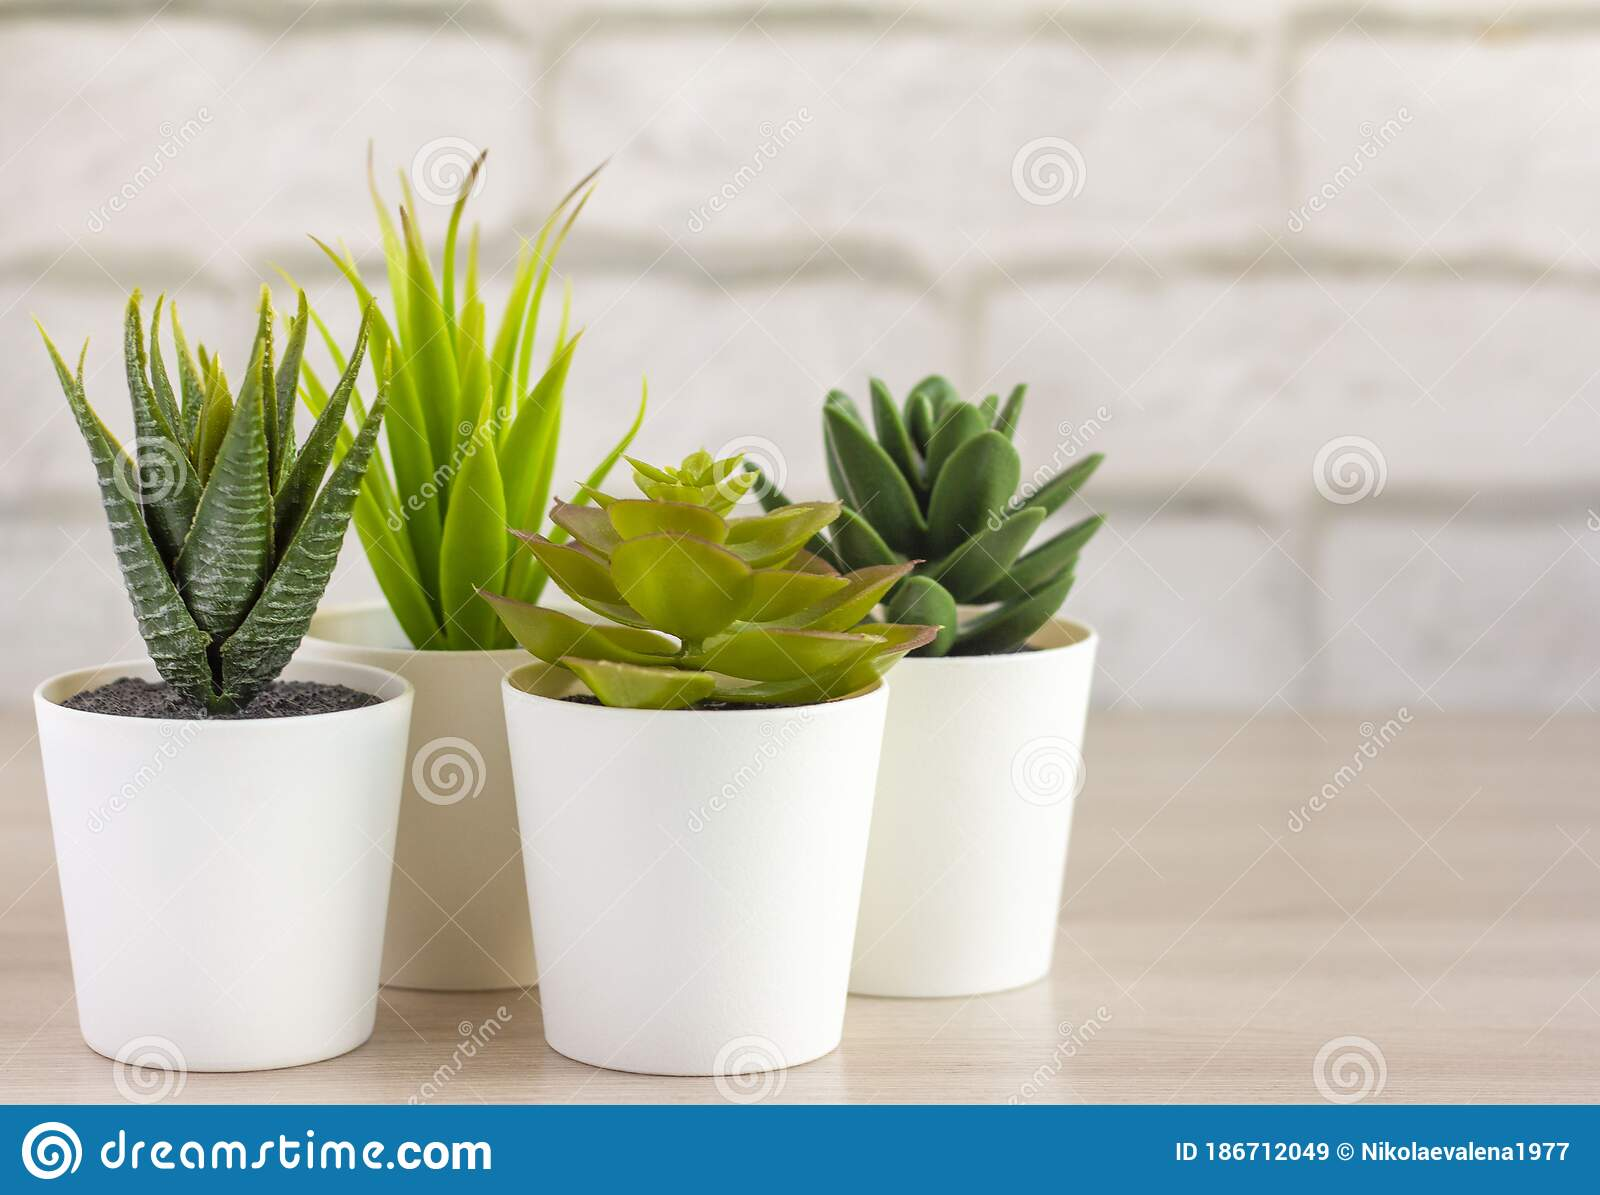 Indoor Plants Various Succulents In Pots Succulents In White Mini Pots Ideas For Home Decoration Copy Space Stock Image Image Of Diverse Modern 186712049